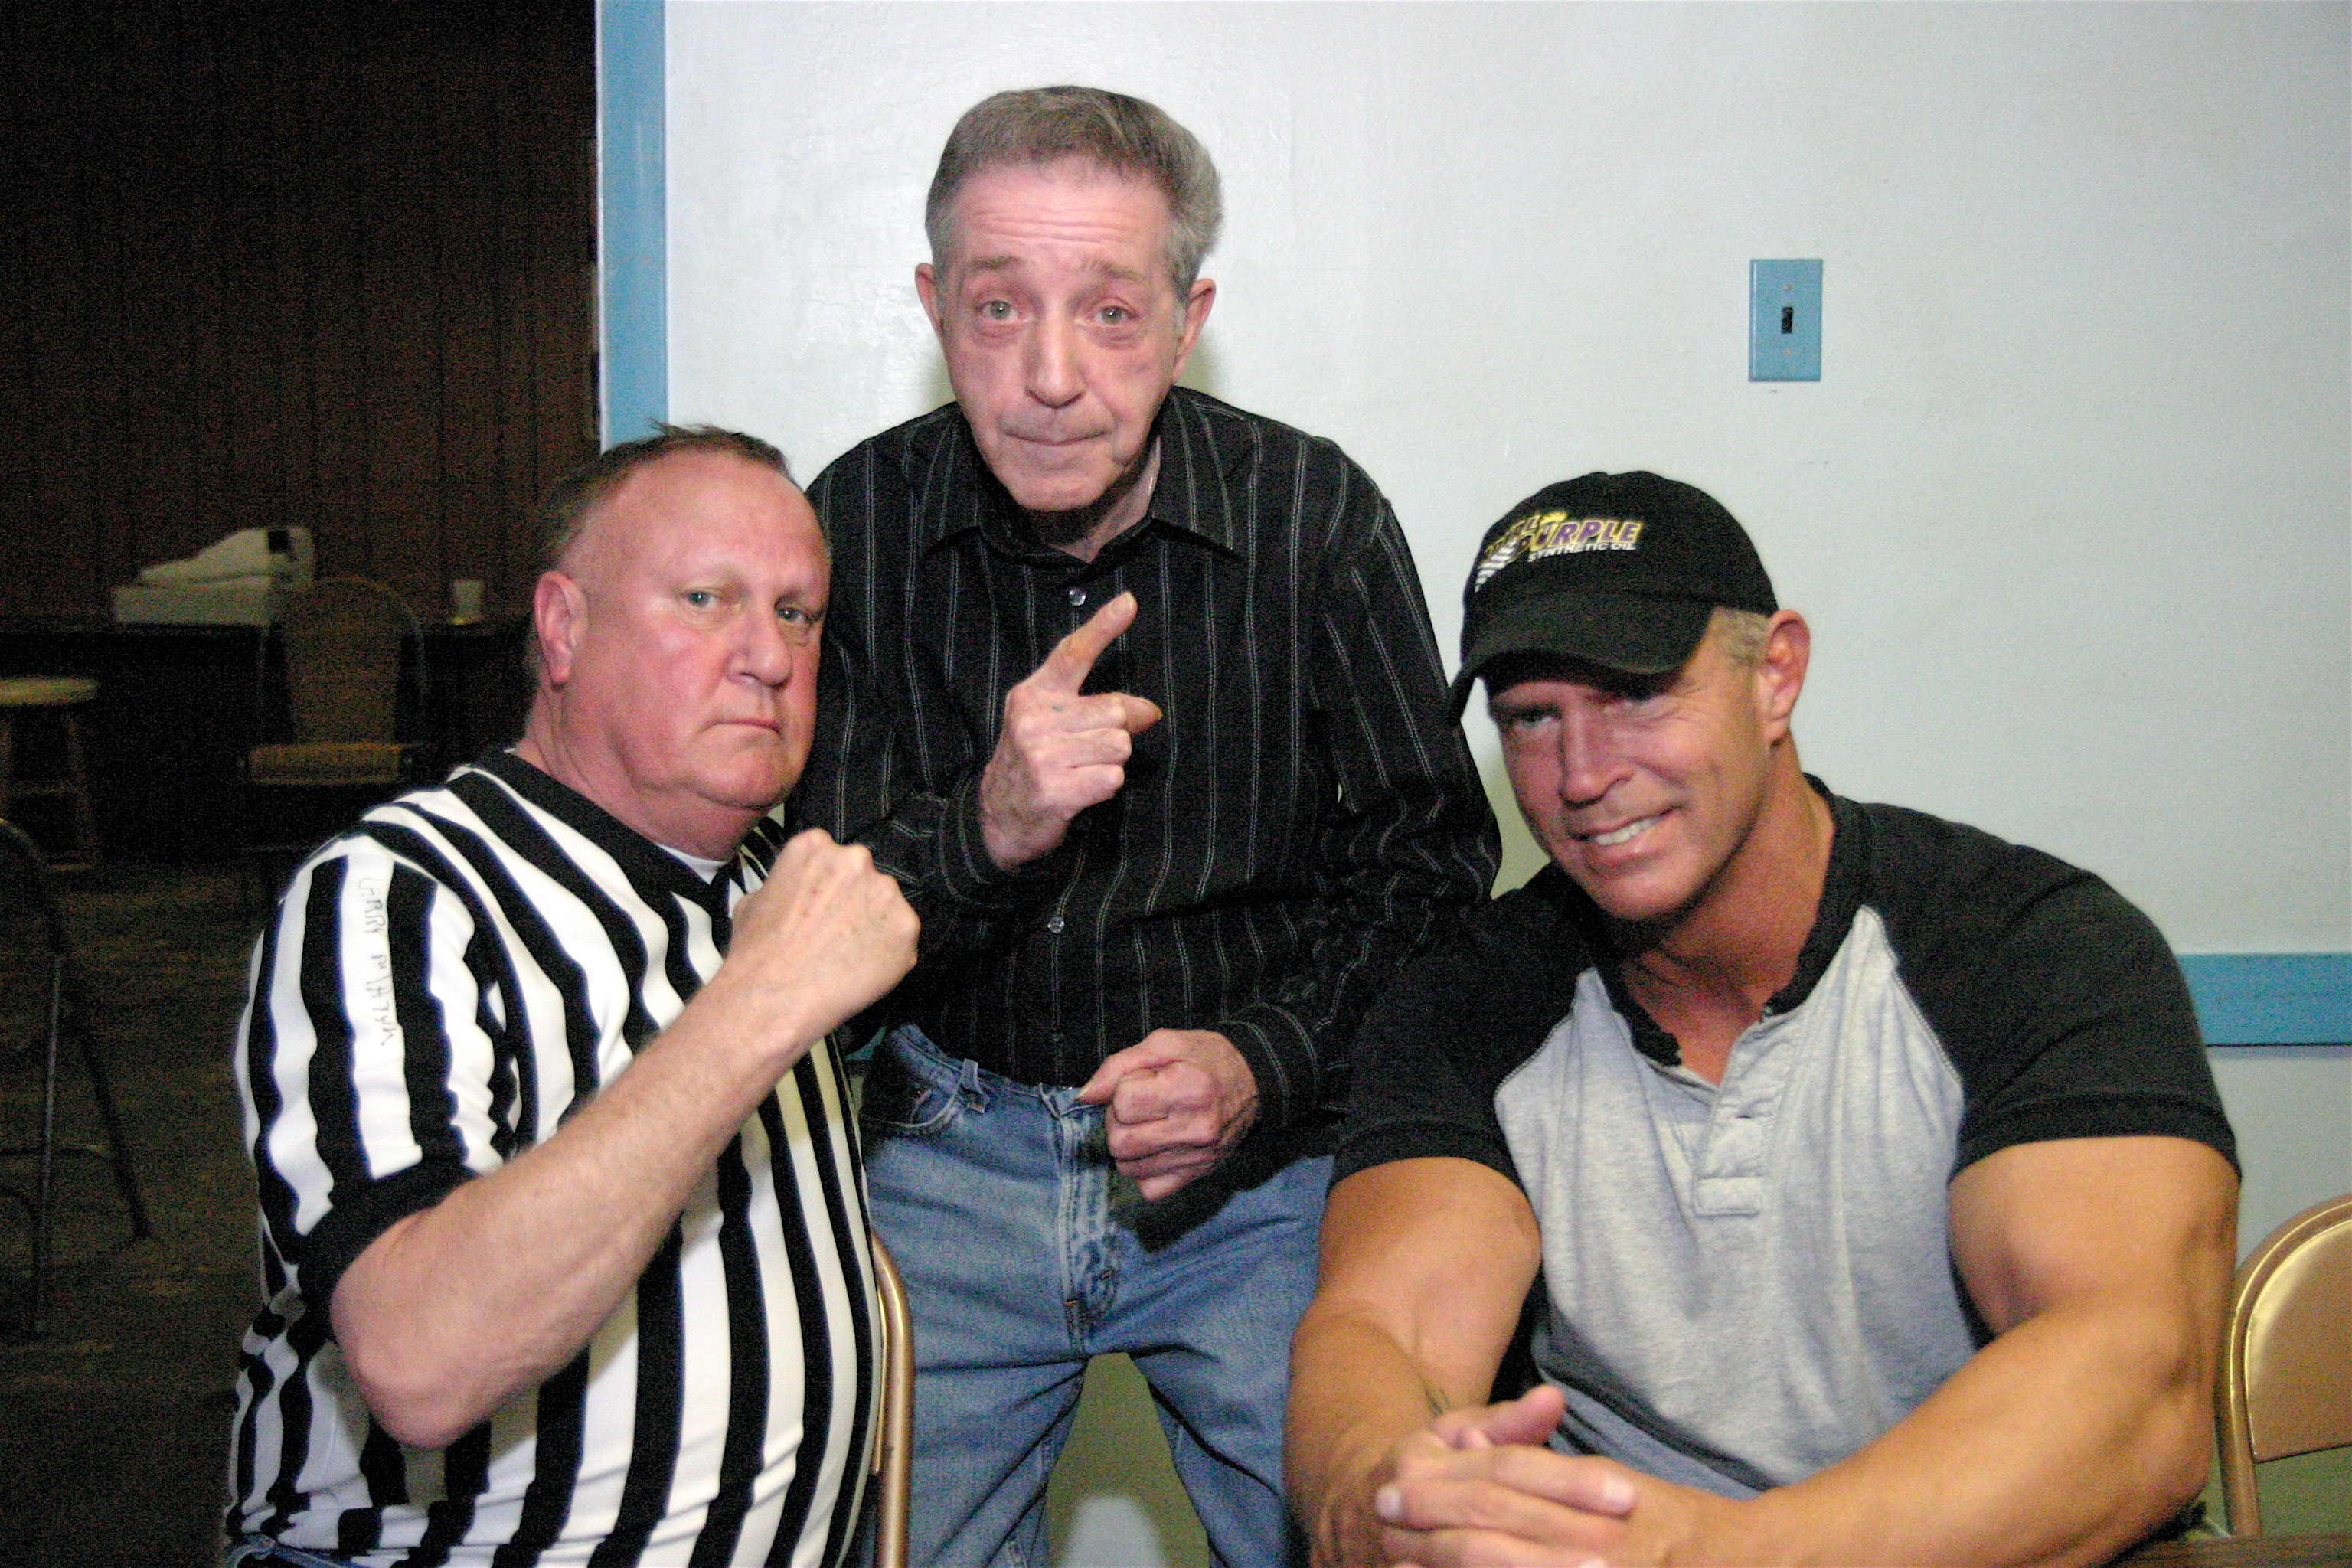 dave hebner tony costa and bob holly An underperforming thyroid can leave you feeling tired, cold and depressed.